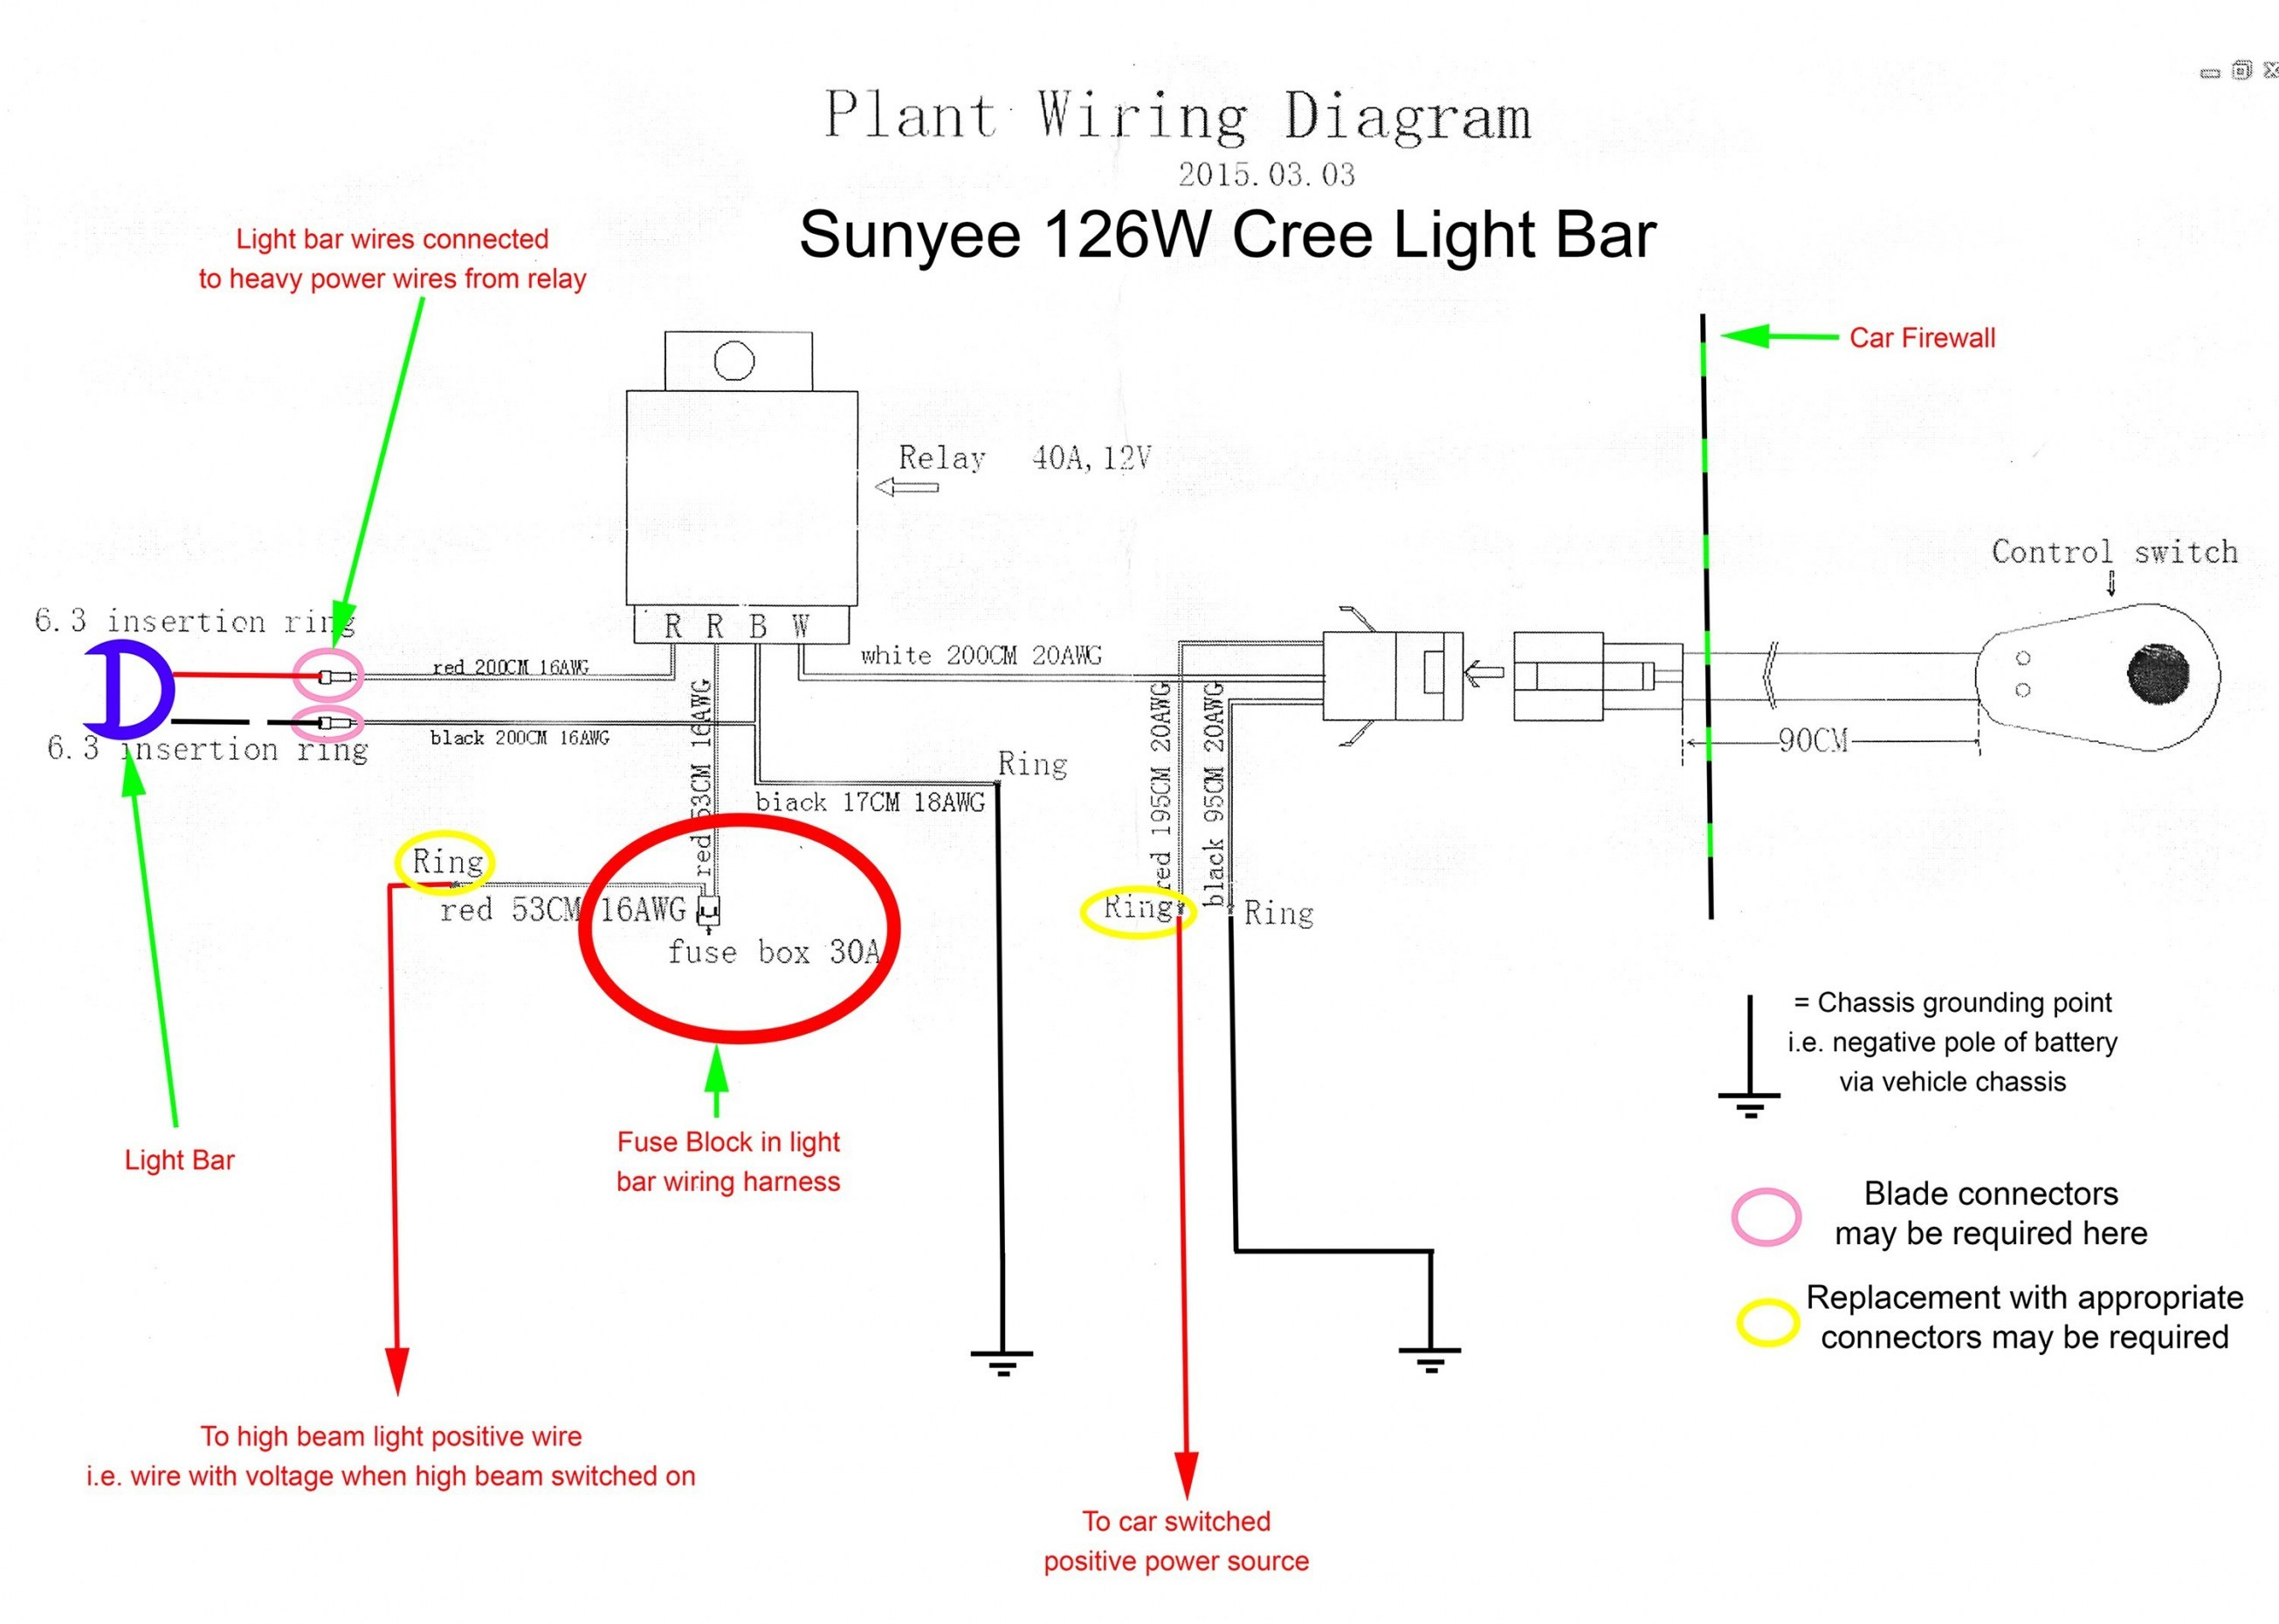 3 Wire Connection Diagram | Wiring Library - Christmas Lights Wiring Diagram